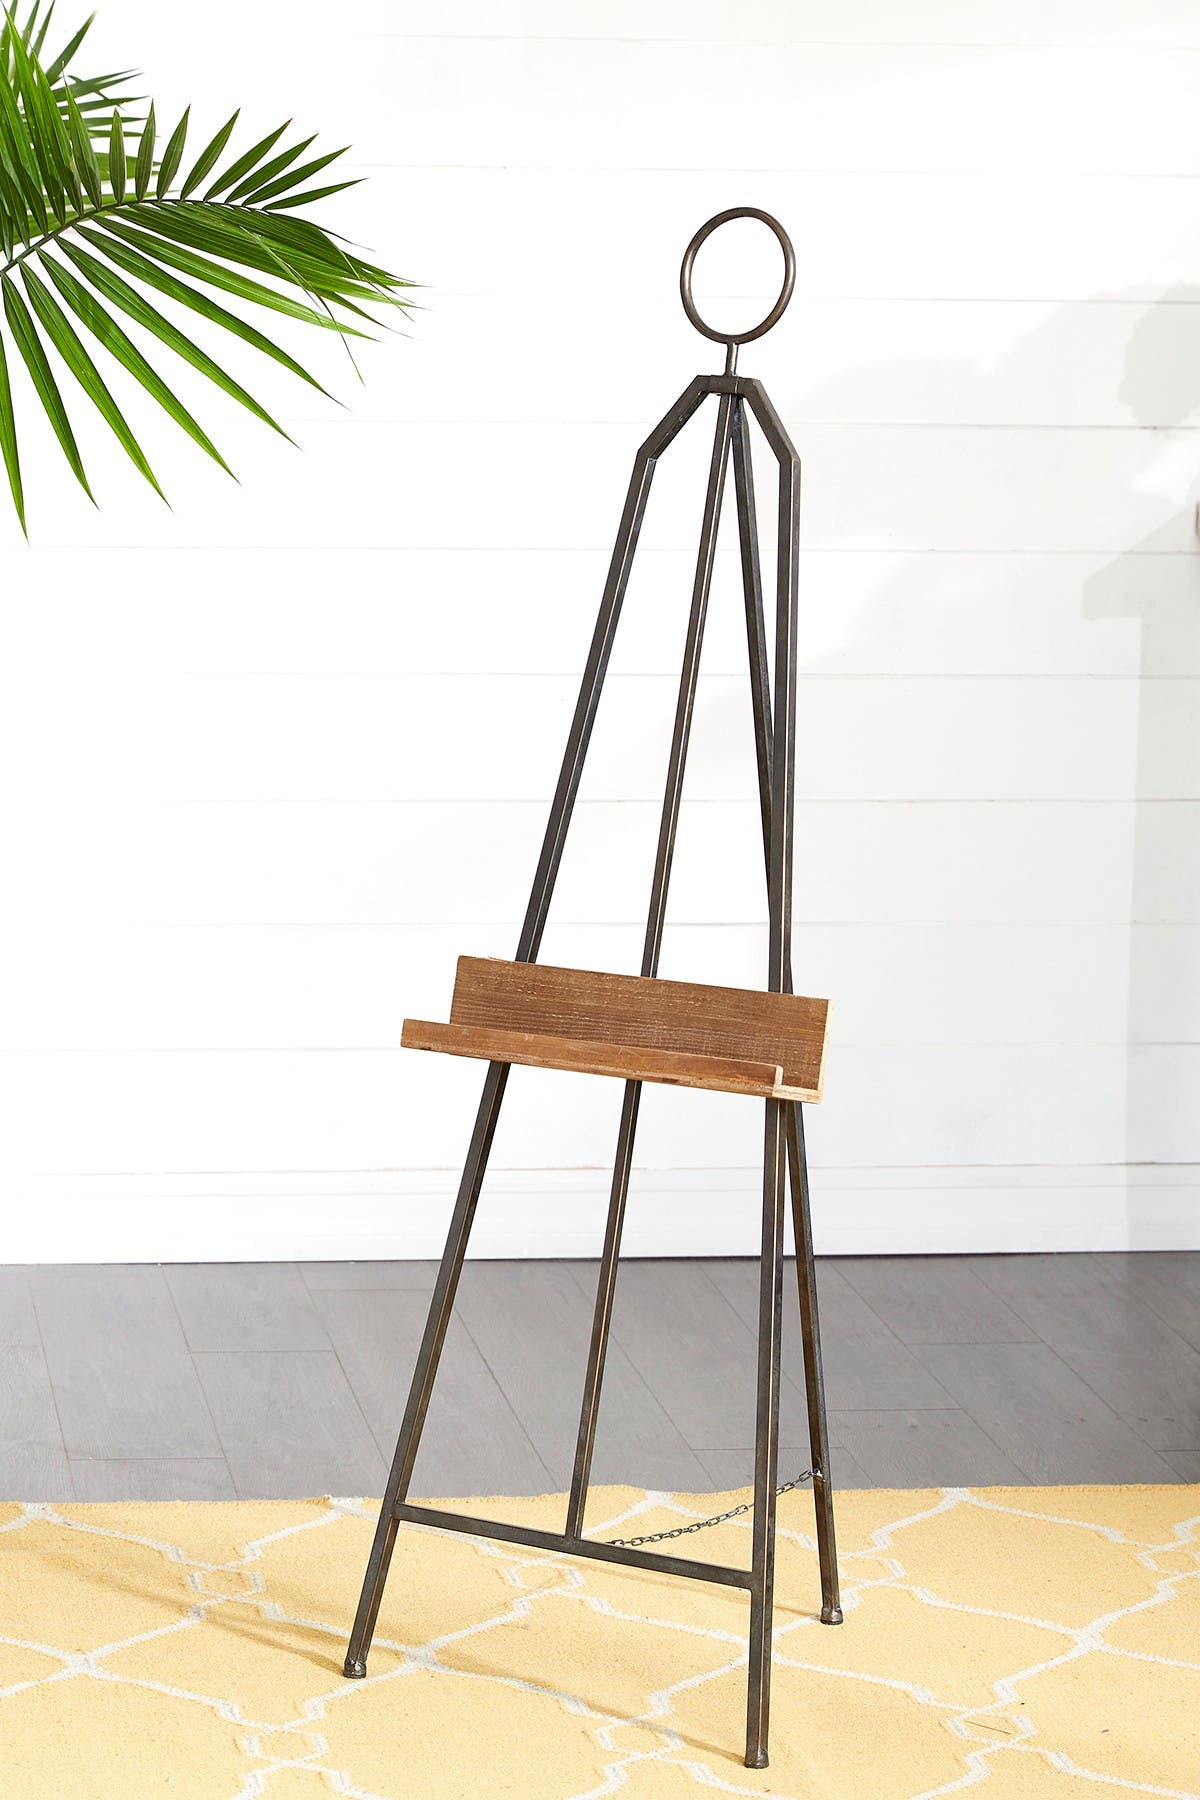 """Image of Willow Row Black Iron Industrial Easel - 52"""" x 18"""" x 19"""""""